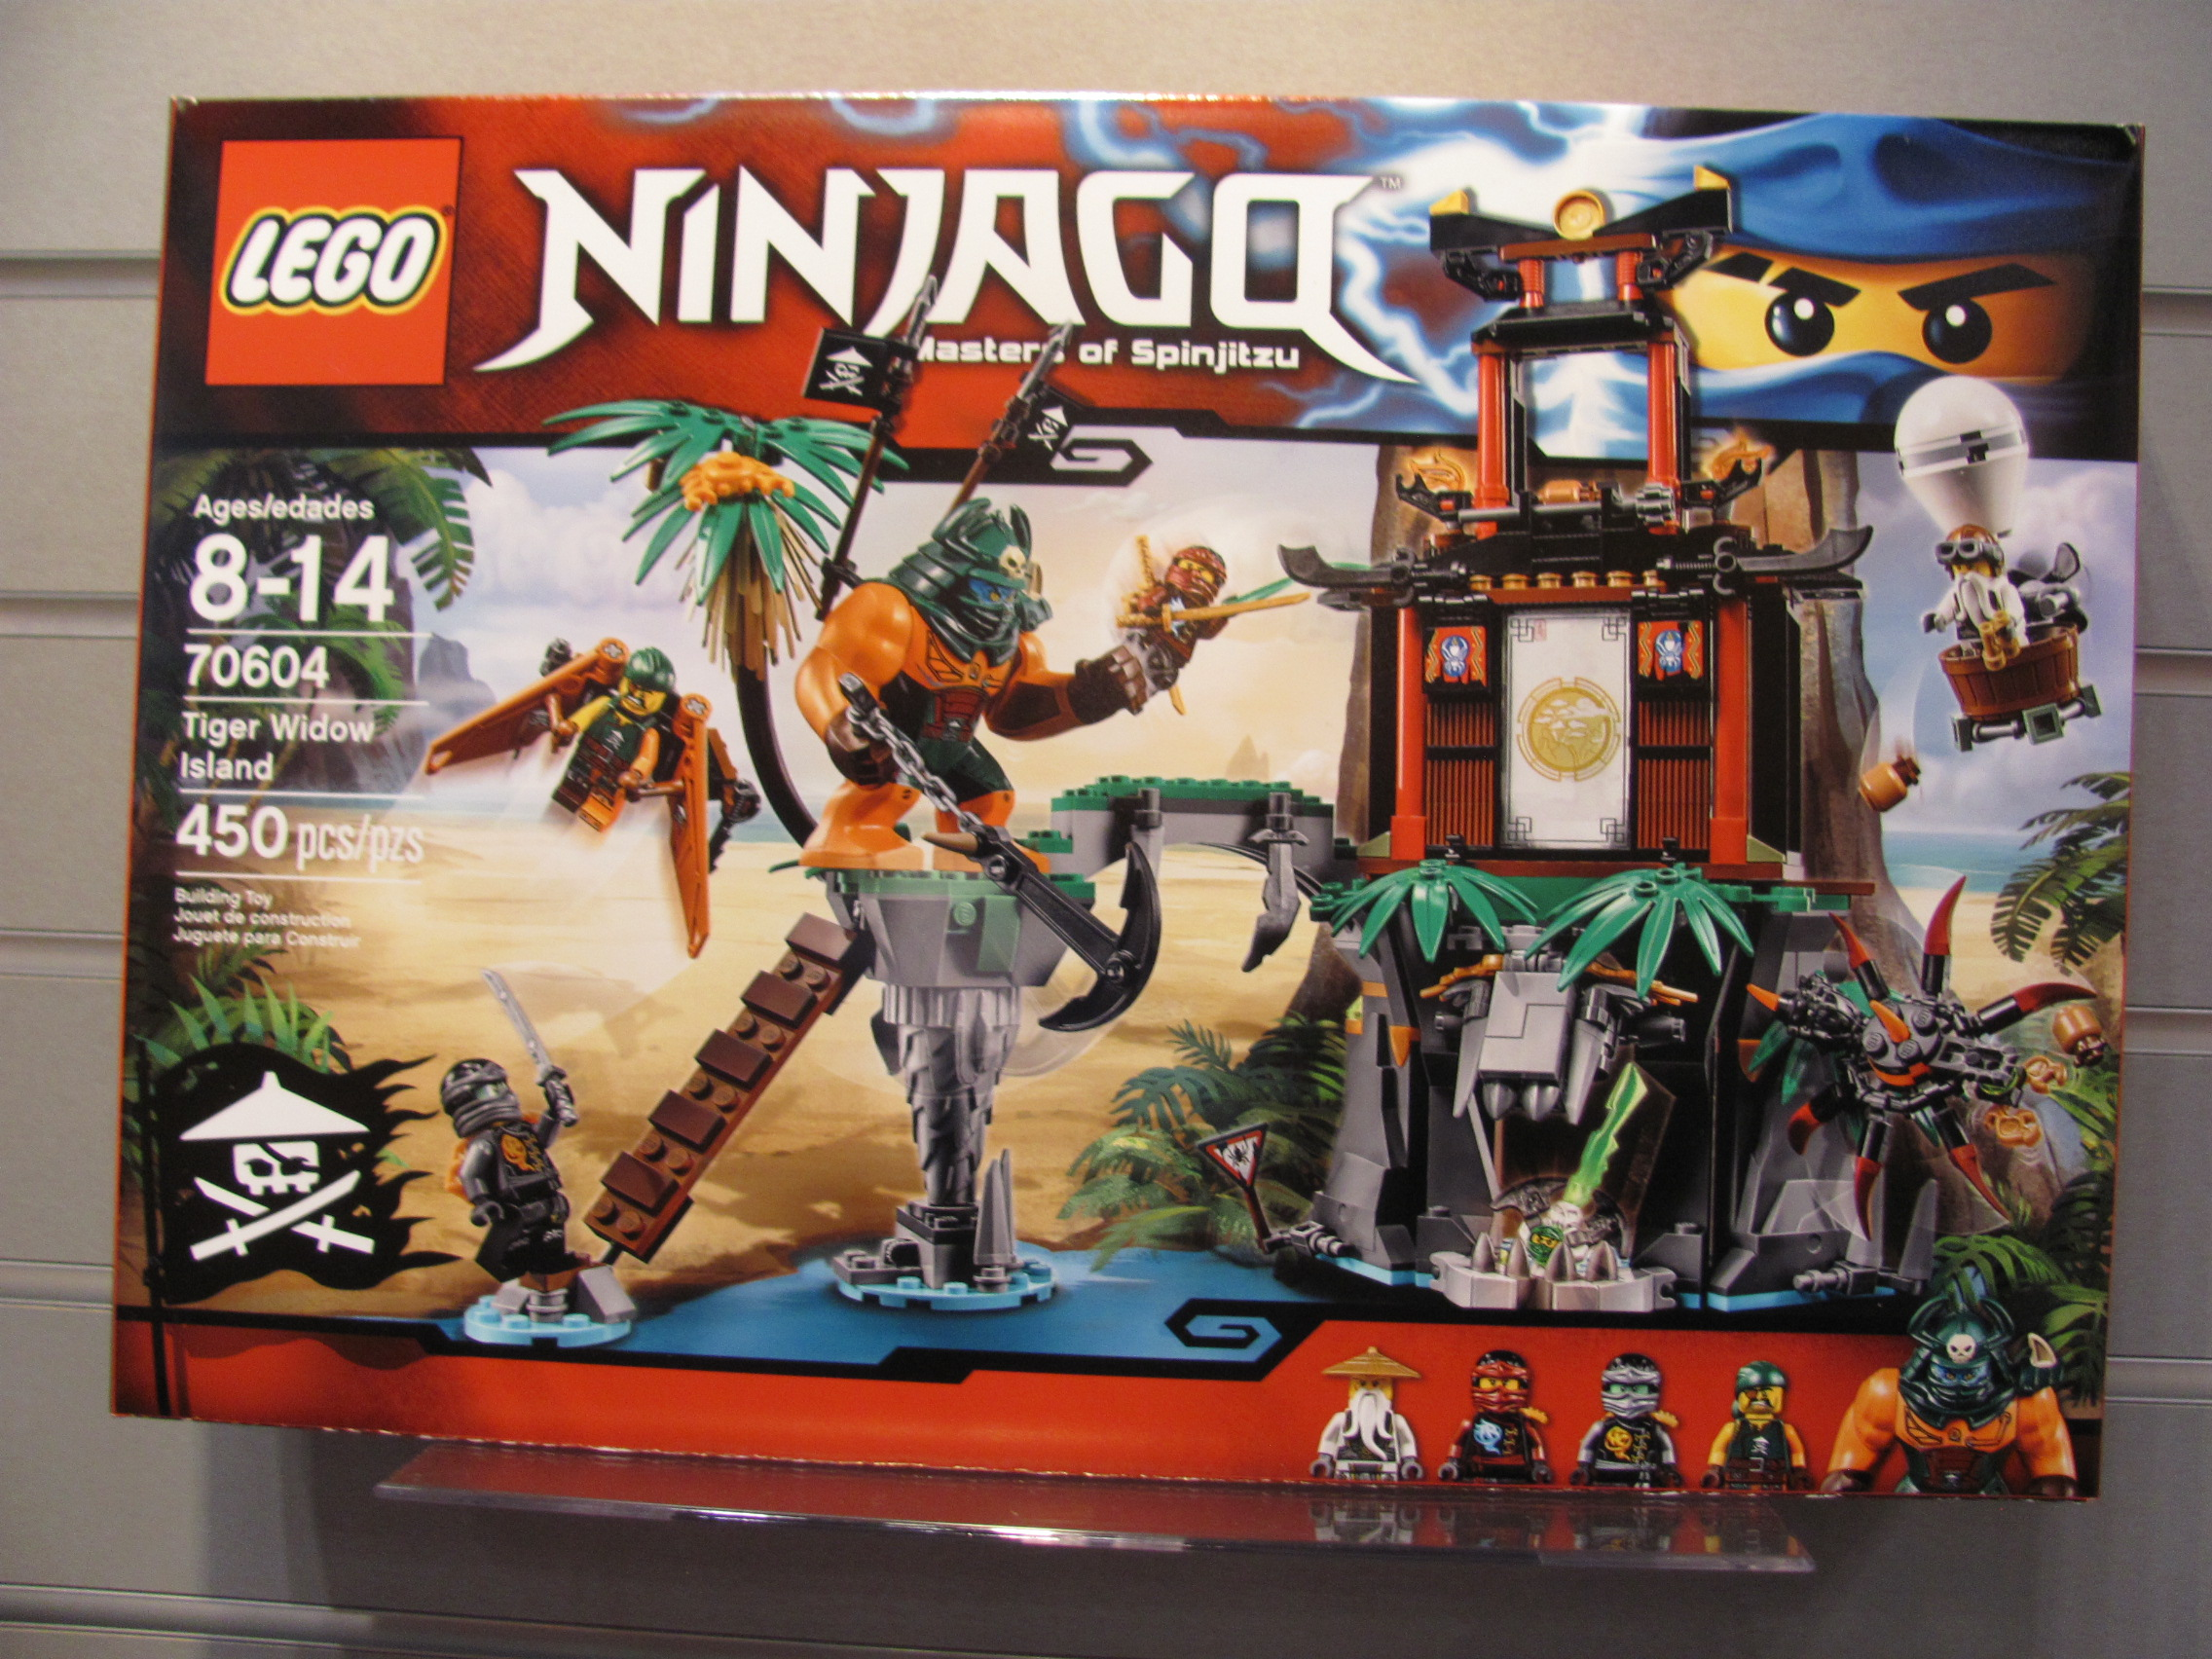 march will also see the release of tiger widow island 50 with an ogre like figure - Lego Ninjago Pirates